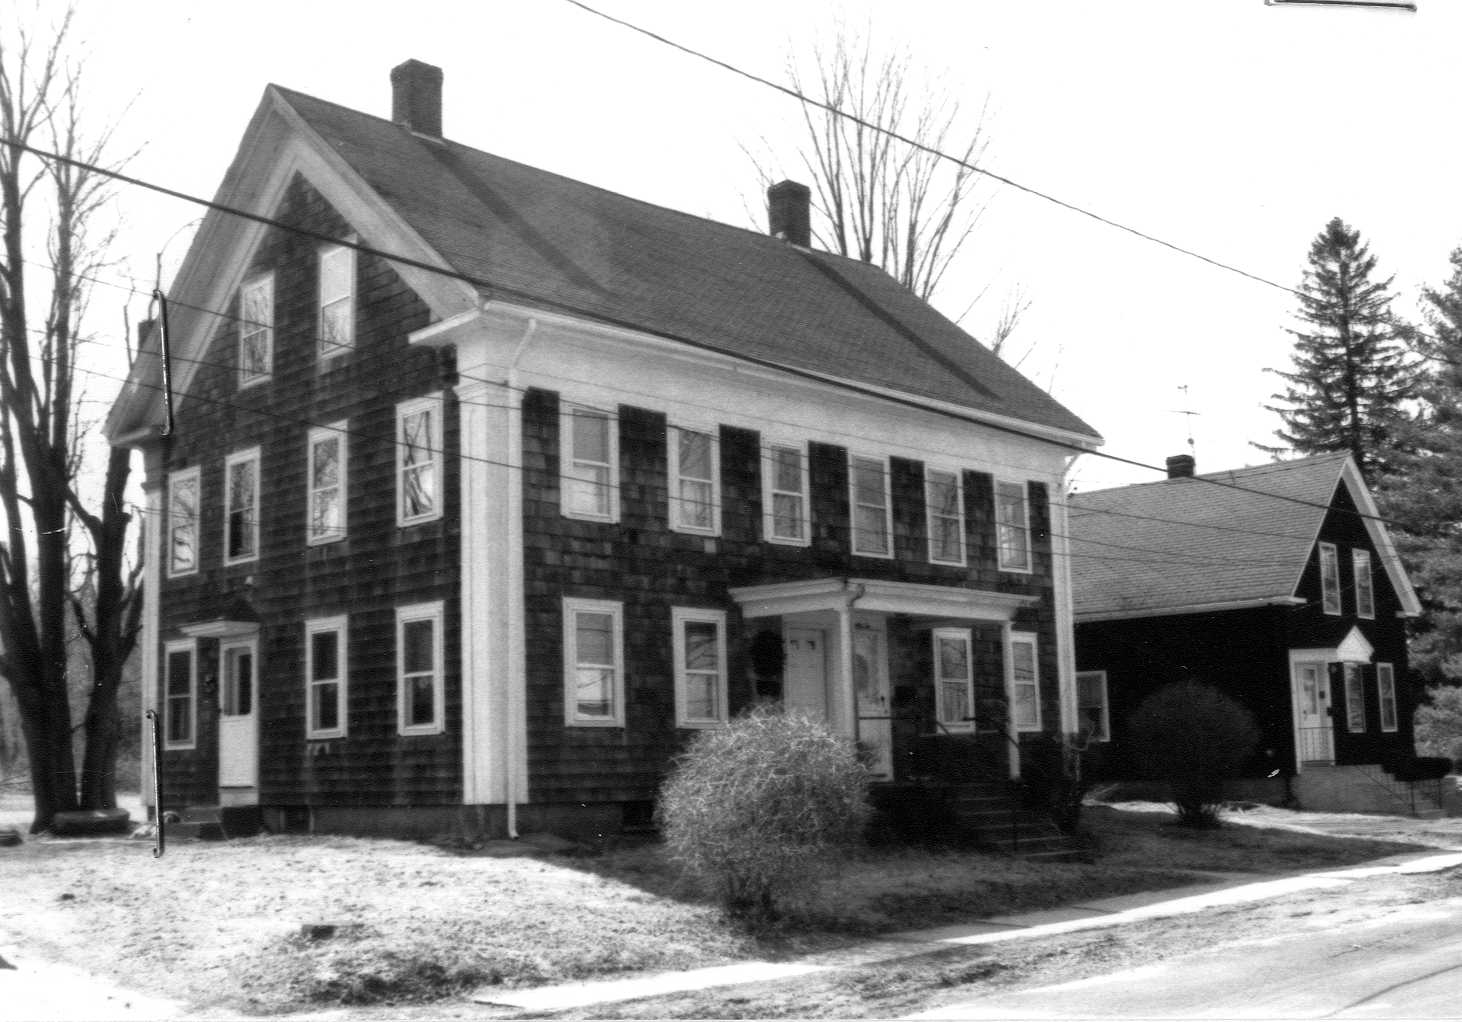 82-84 Pleasant Street  - image from the town's 1980s survey